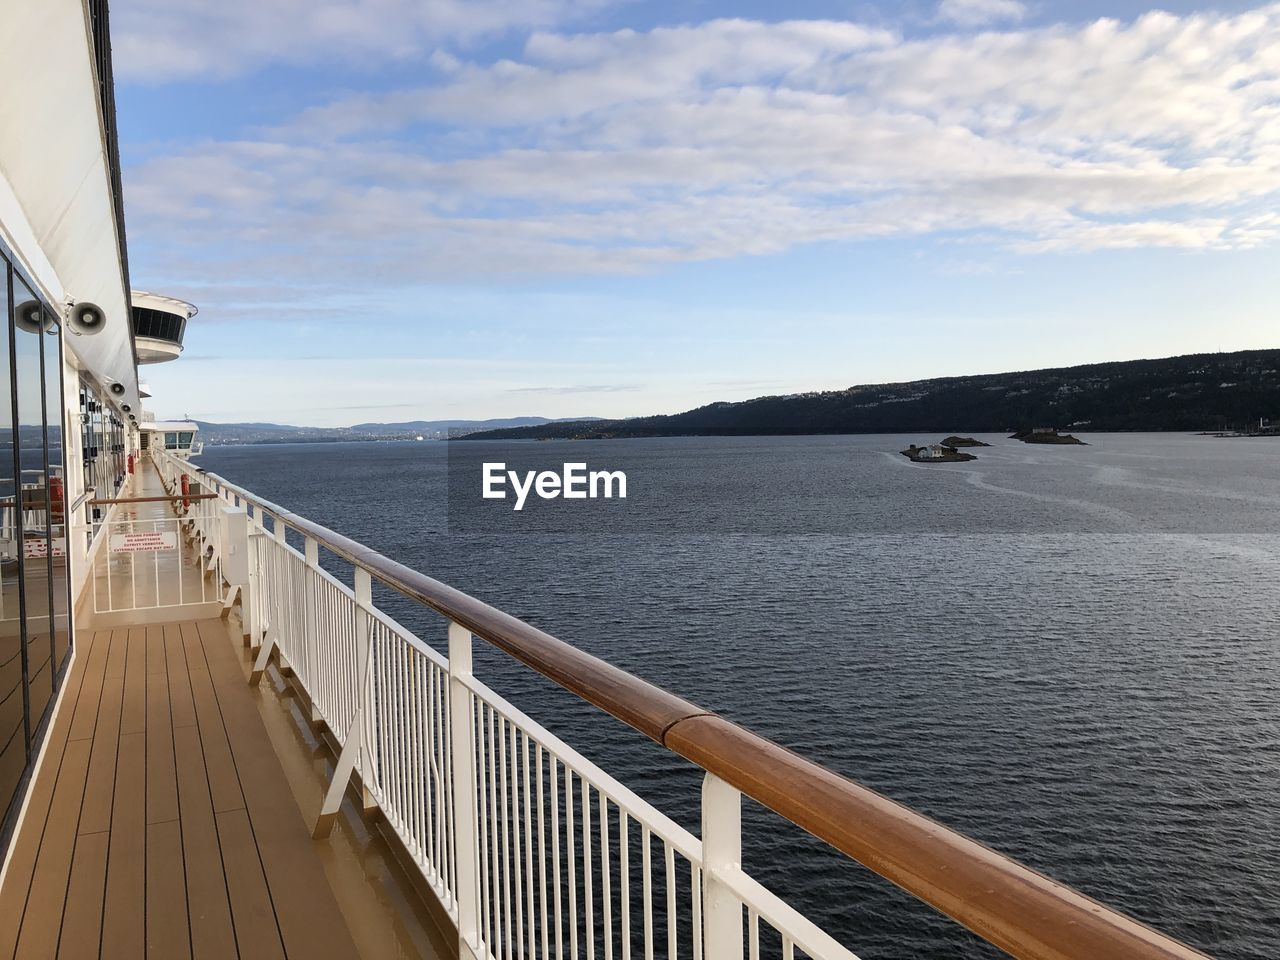 water, sky, railing, cloud - sky, sea, scenics - nature, nature, beauty in nature, transportation, day, mountain, nautical vessel, no people, tranquil scene, outdoors, mode of transportation, architecture, tranquility, built structure, cruise ship, passenger craft